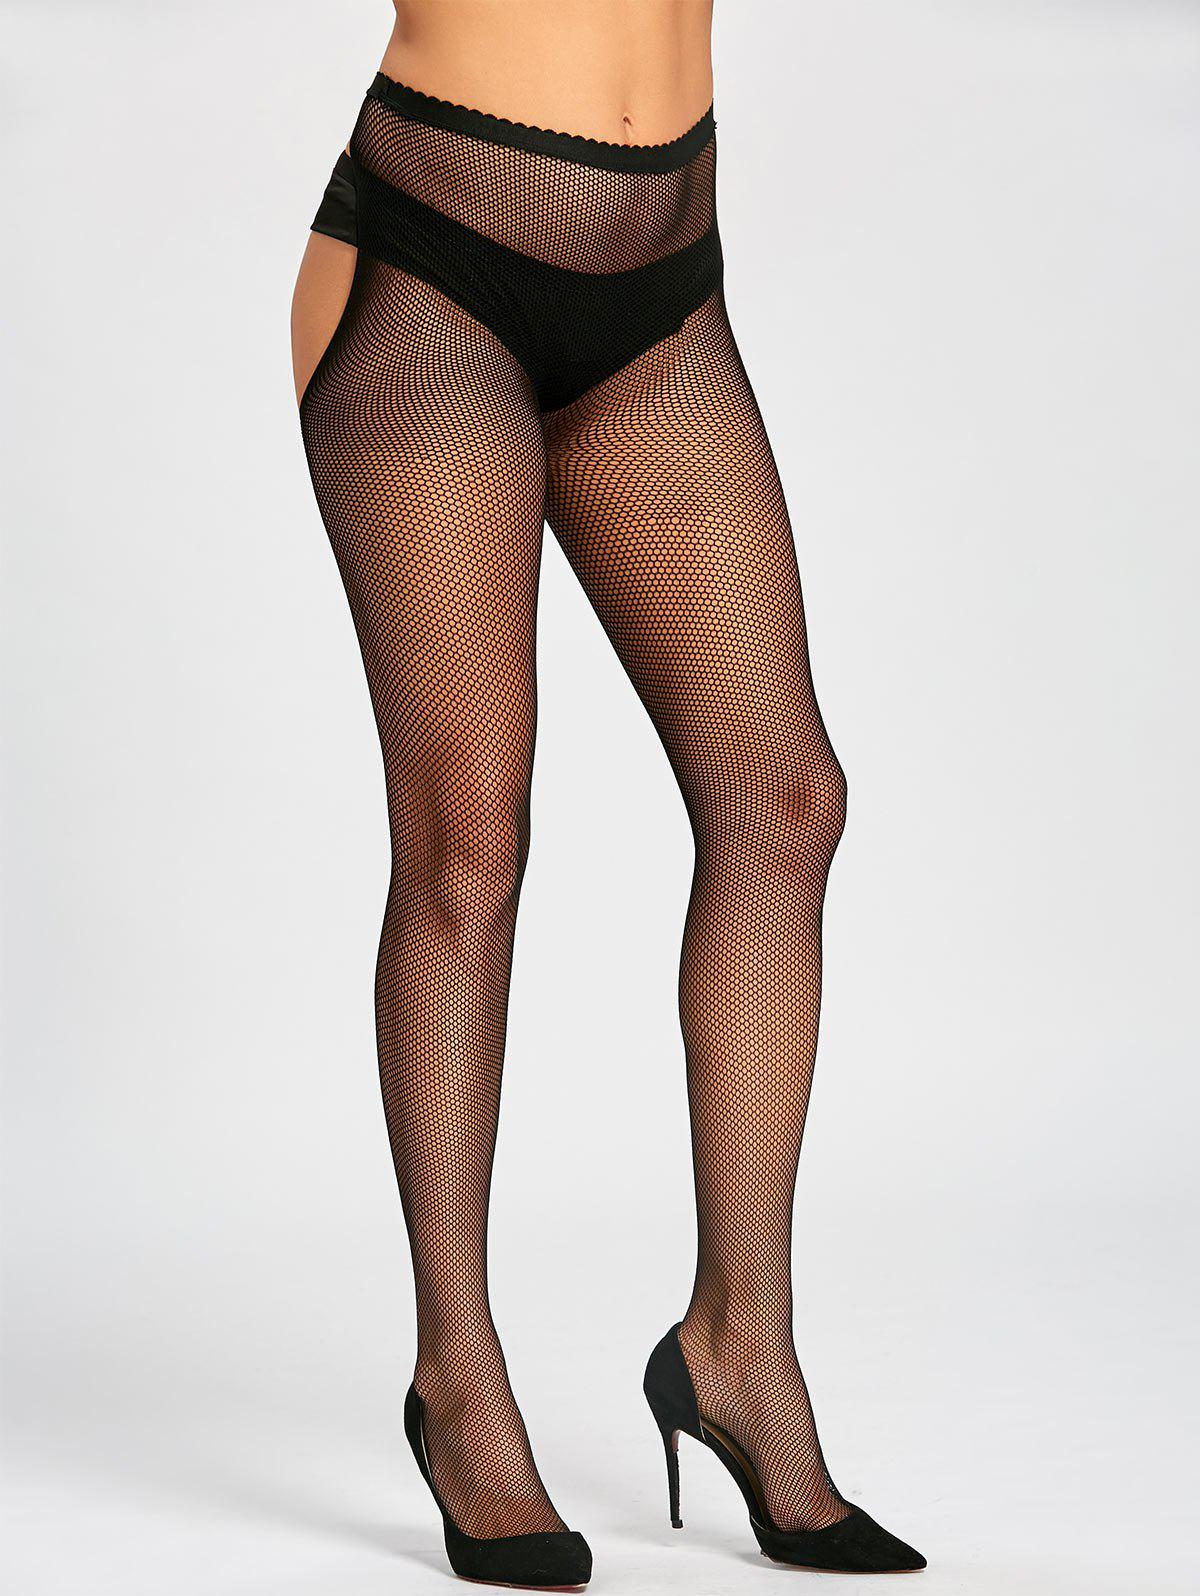 Fishnet Sheer Cut Out Tights - BLACK ONE SIZE